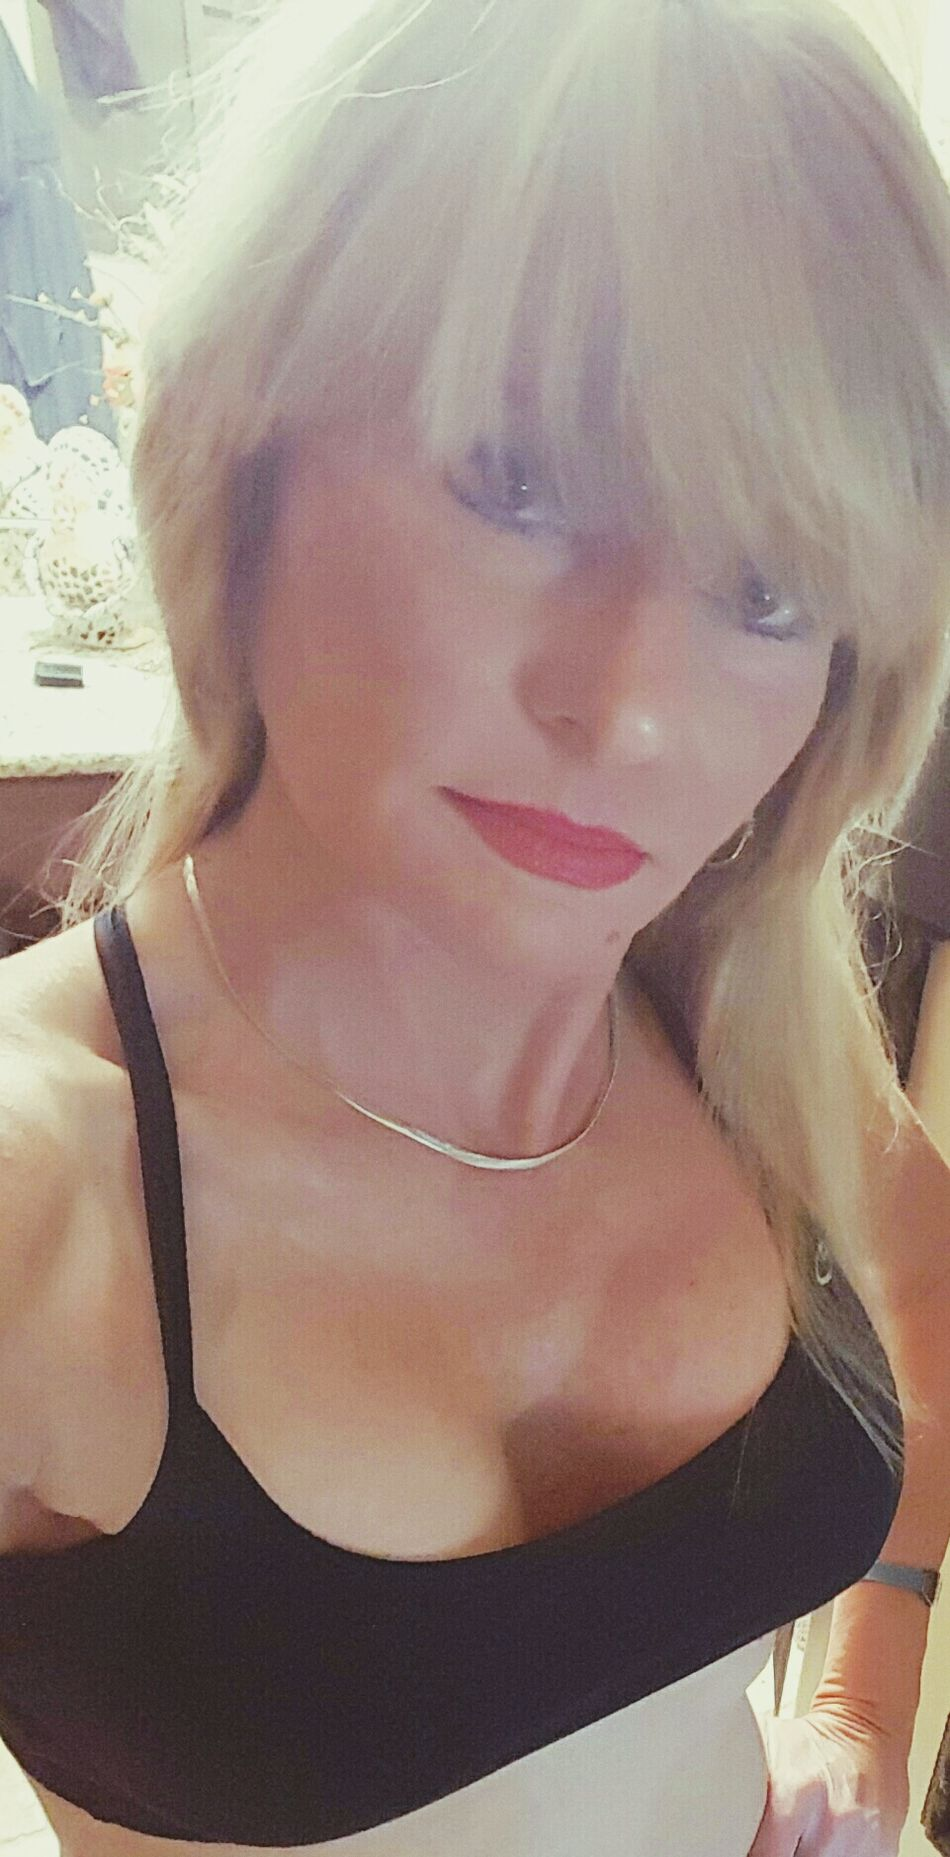 DontBeAfraid  Dontbejealous Justhavefunツ Alwaysneedamanslove Please Love The Picture Eye4photography  Eyeemselfie♡♡♡ SexyGirl.♥ Cheese! That's Me Eyeforliving Youonlygetonelife Iveseenwaytoomuch Tryingtobehealthy